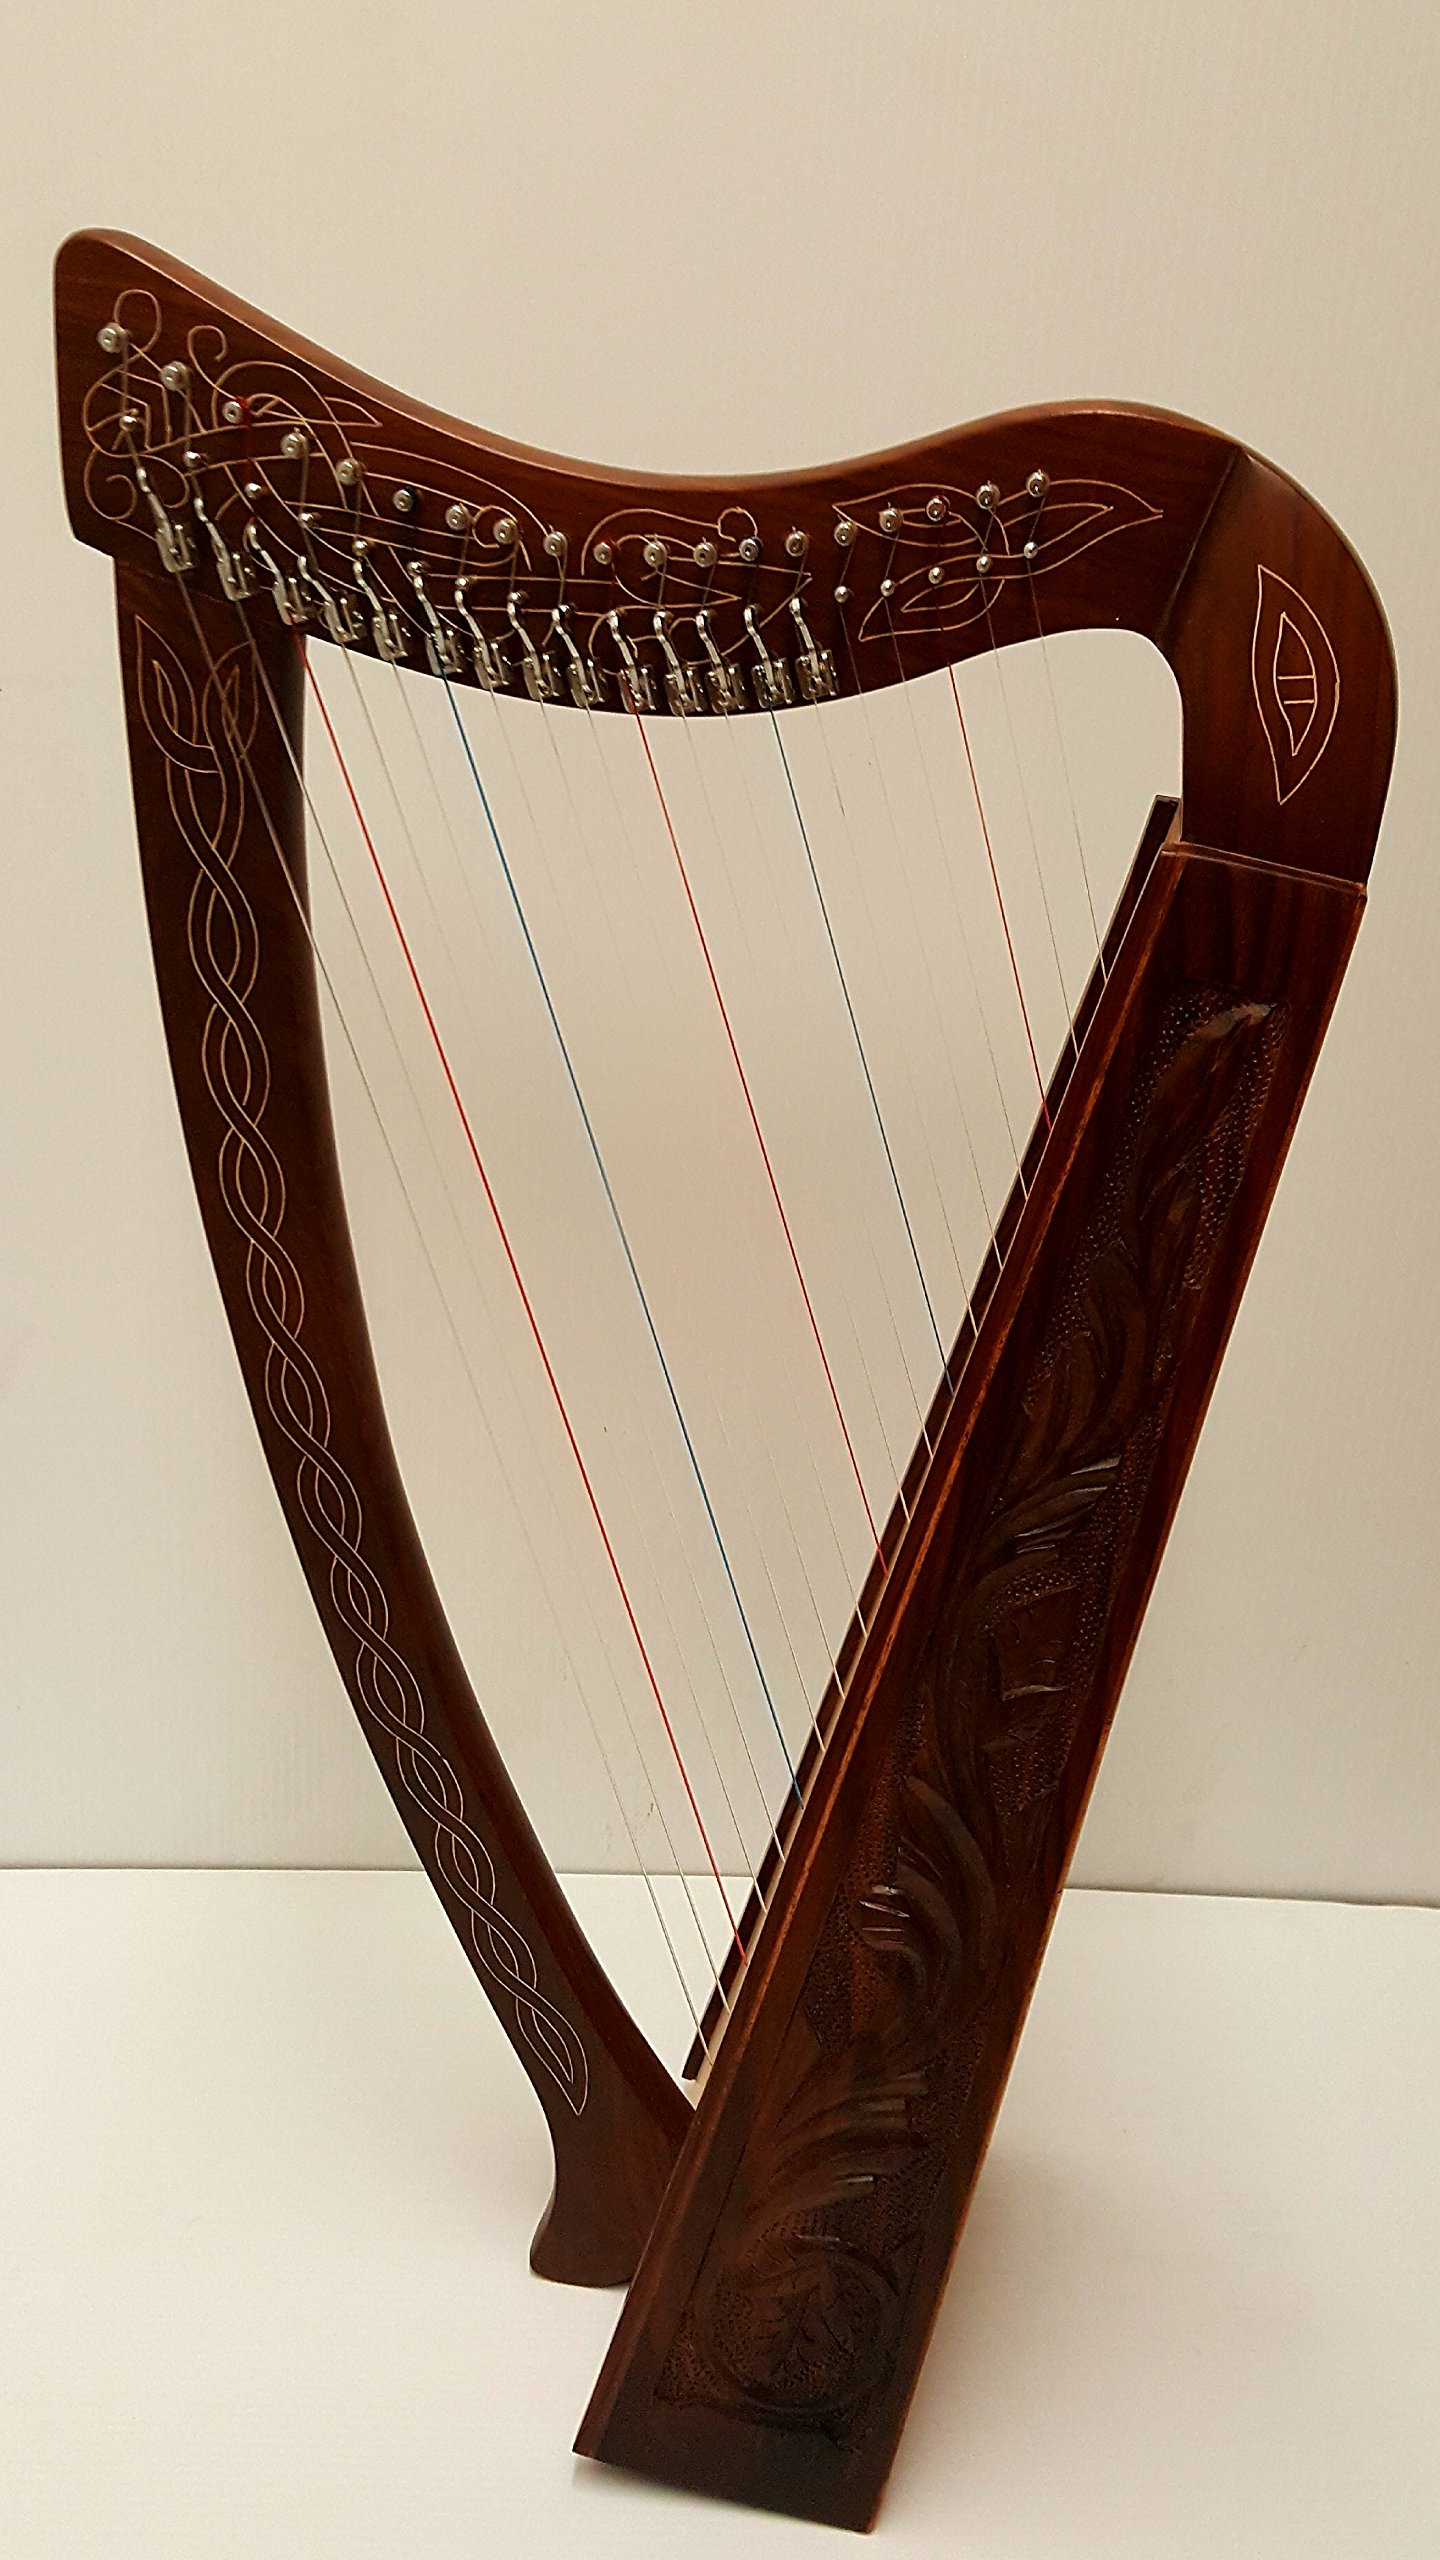 31 Inch Tall Celtic Irish Knee Harp 19 Strings Solid Wood Free Bag Strings Key by Sturgis (Image #1)